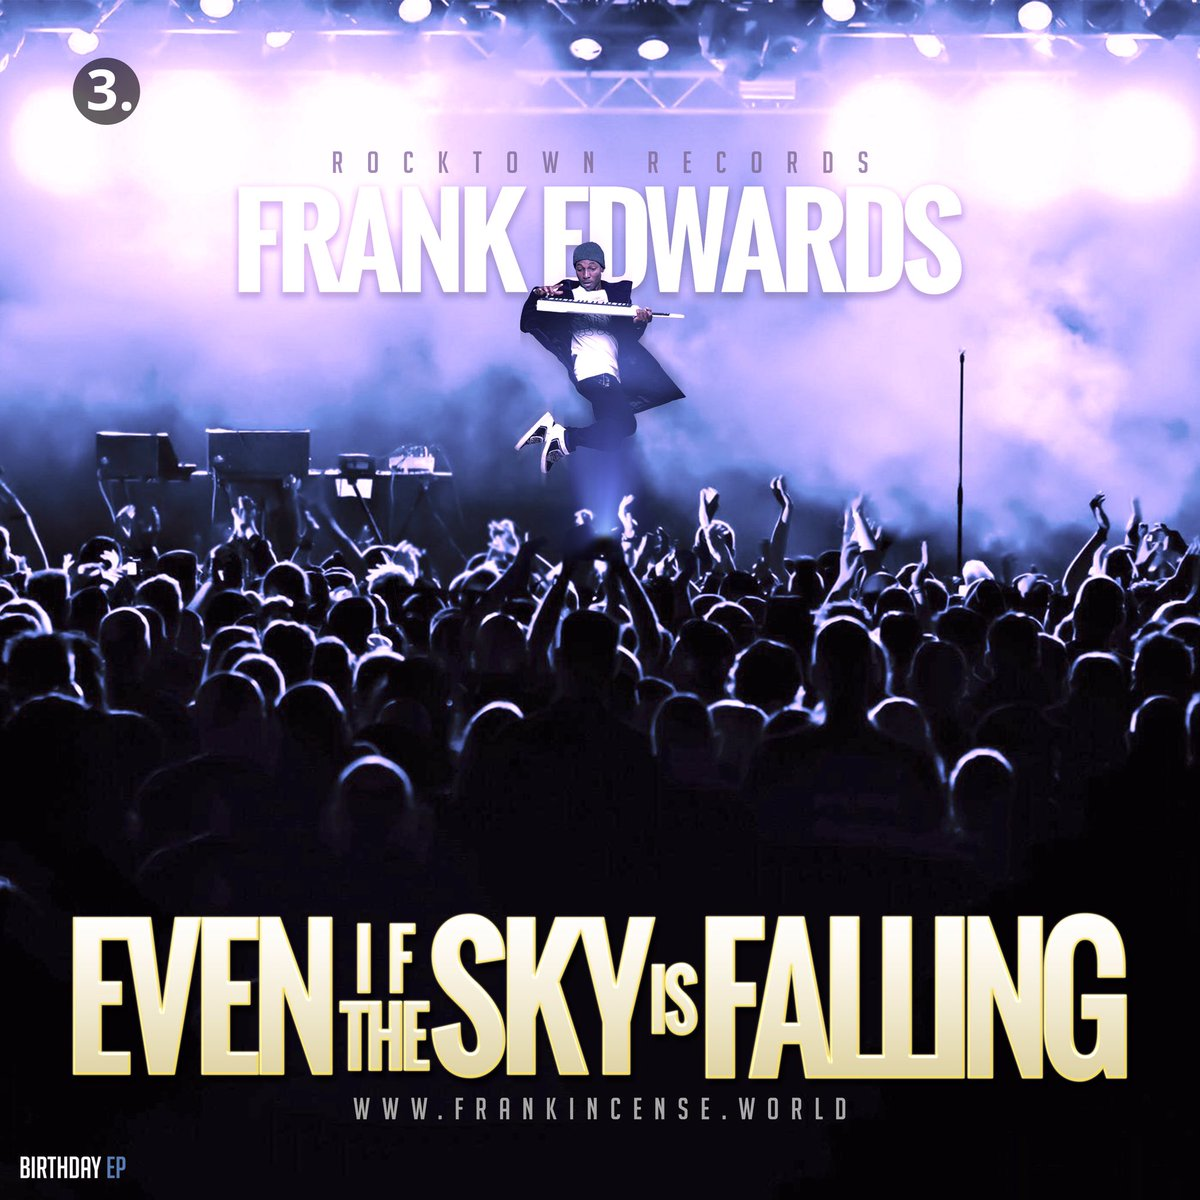 frank-edwards-even-if-the-sky-is-falling